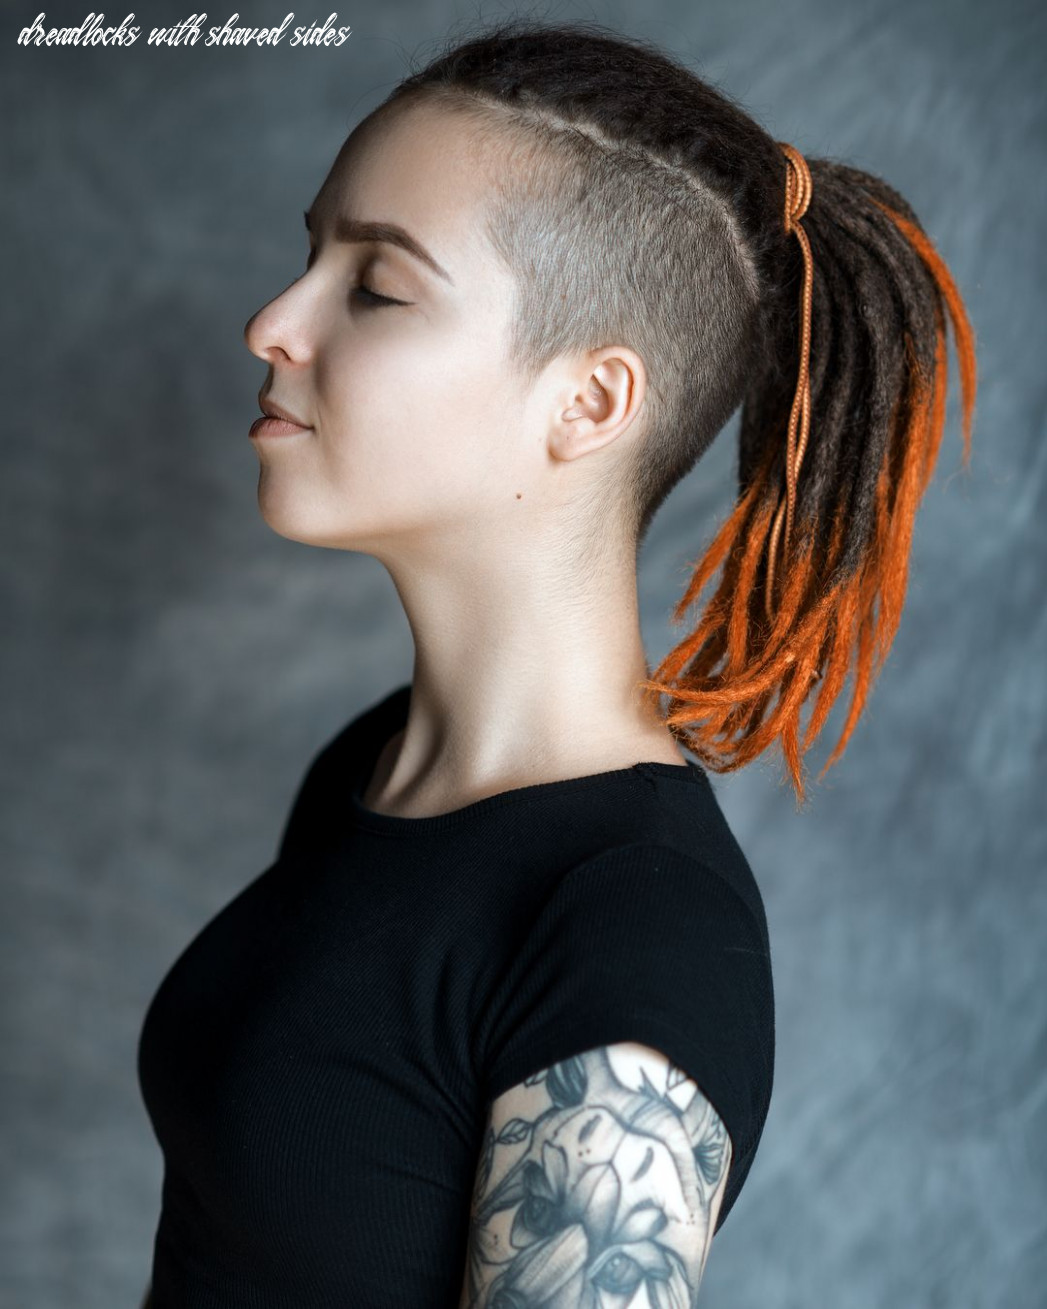 Dreadlock girl with shaved sides and ponytail | Короткие дреды